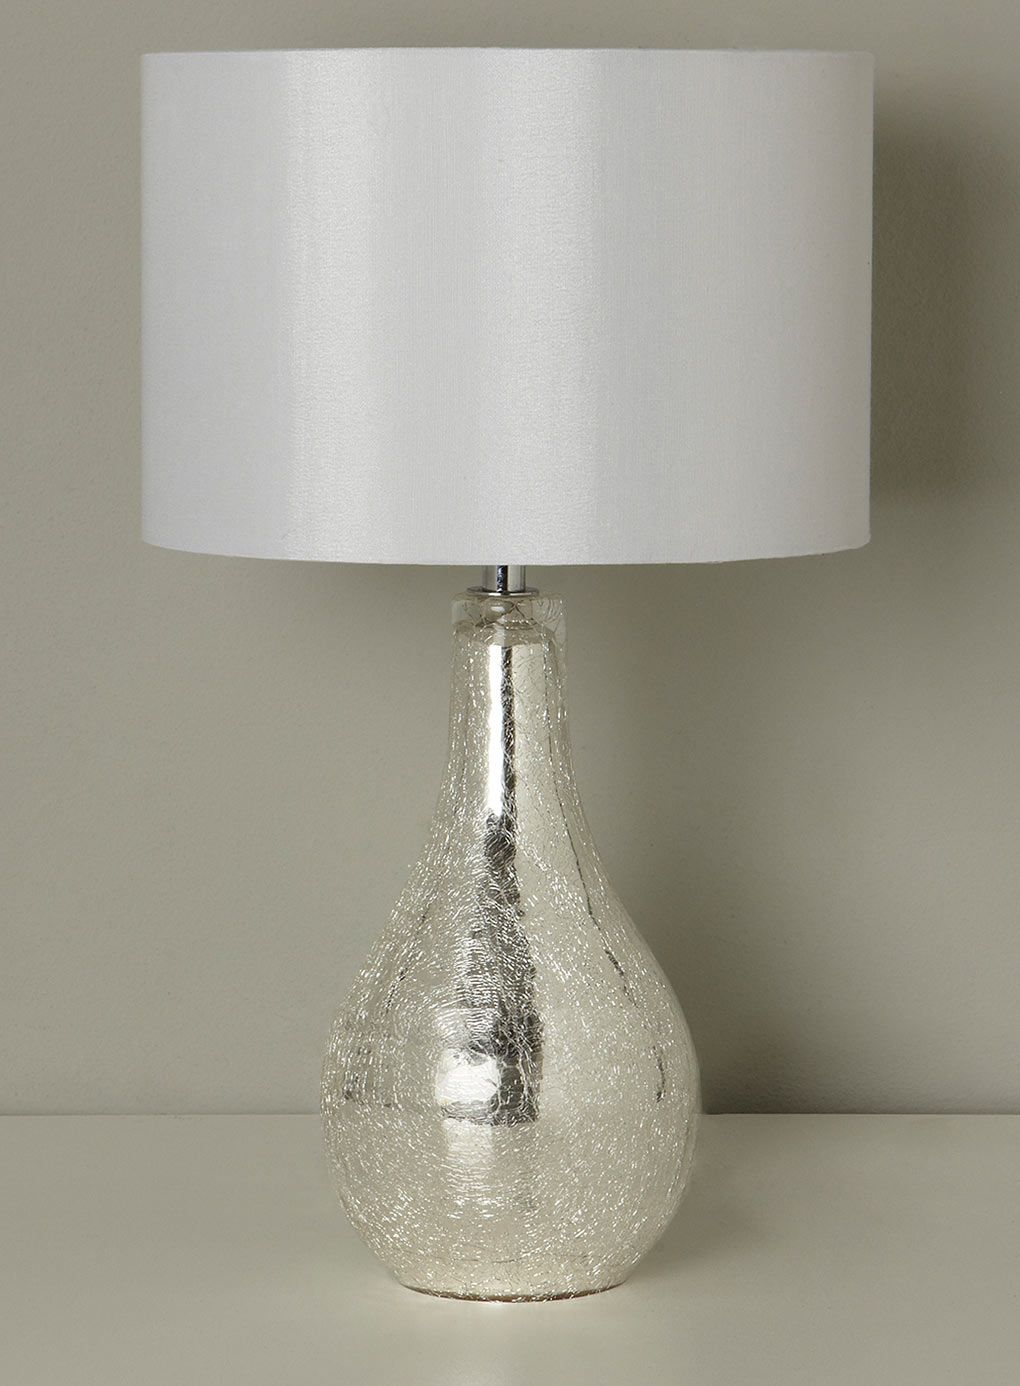 Sabrina Small Mirrored Crackle Table Lamp Bhs Lamp Table Lamp